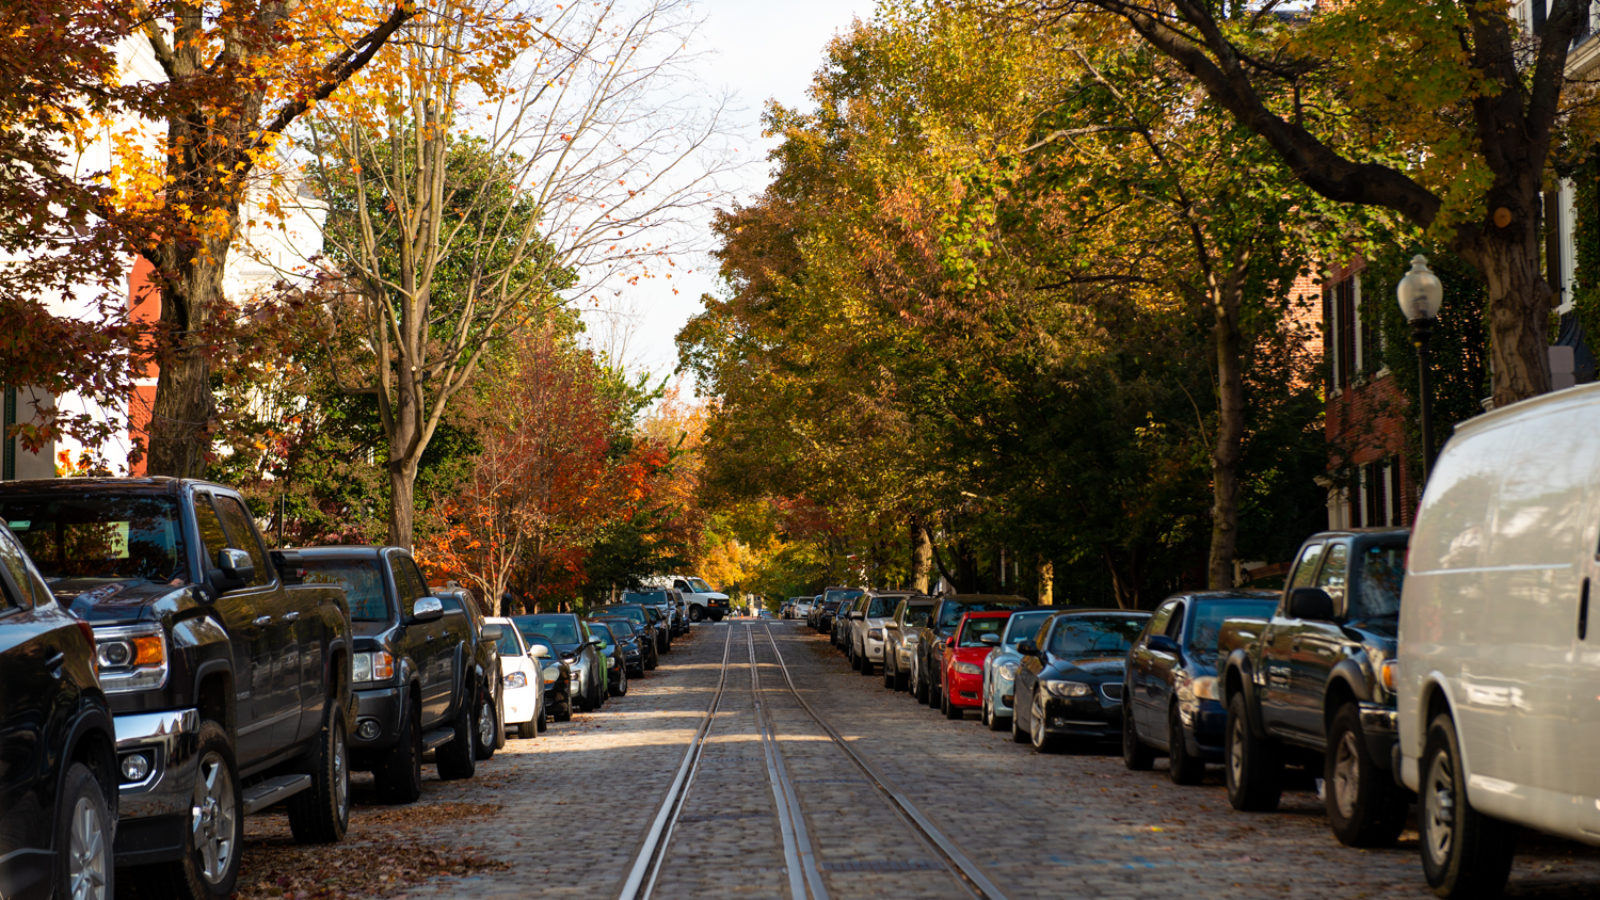 Autumn leaves color the leaves of trees that line a cobblestoned street in Georgetown with old train rails running down the middle of the street.